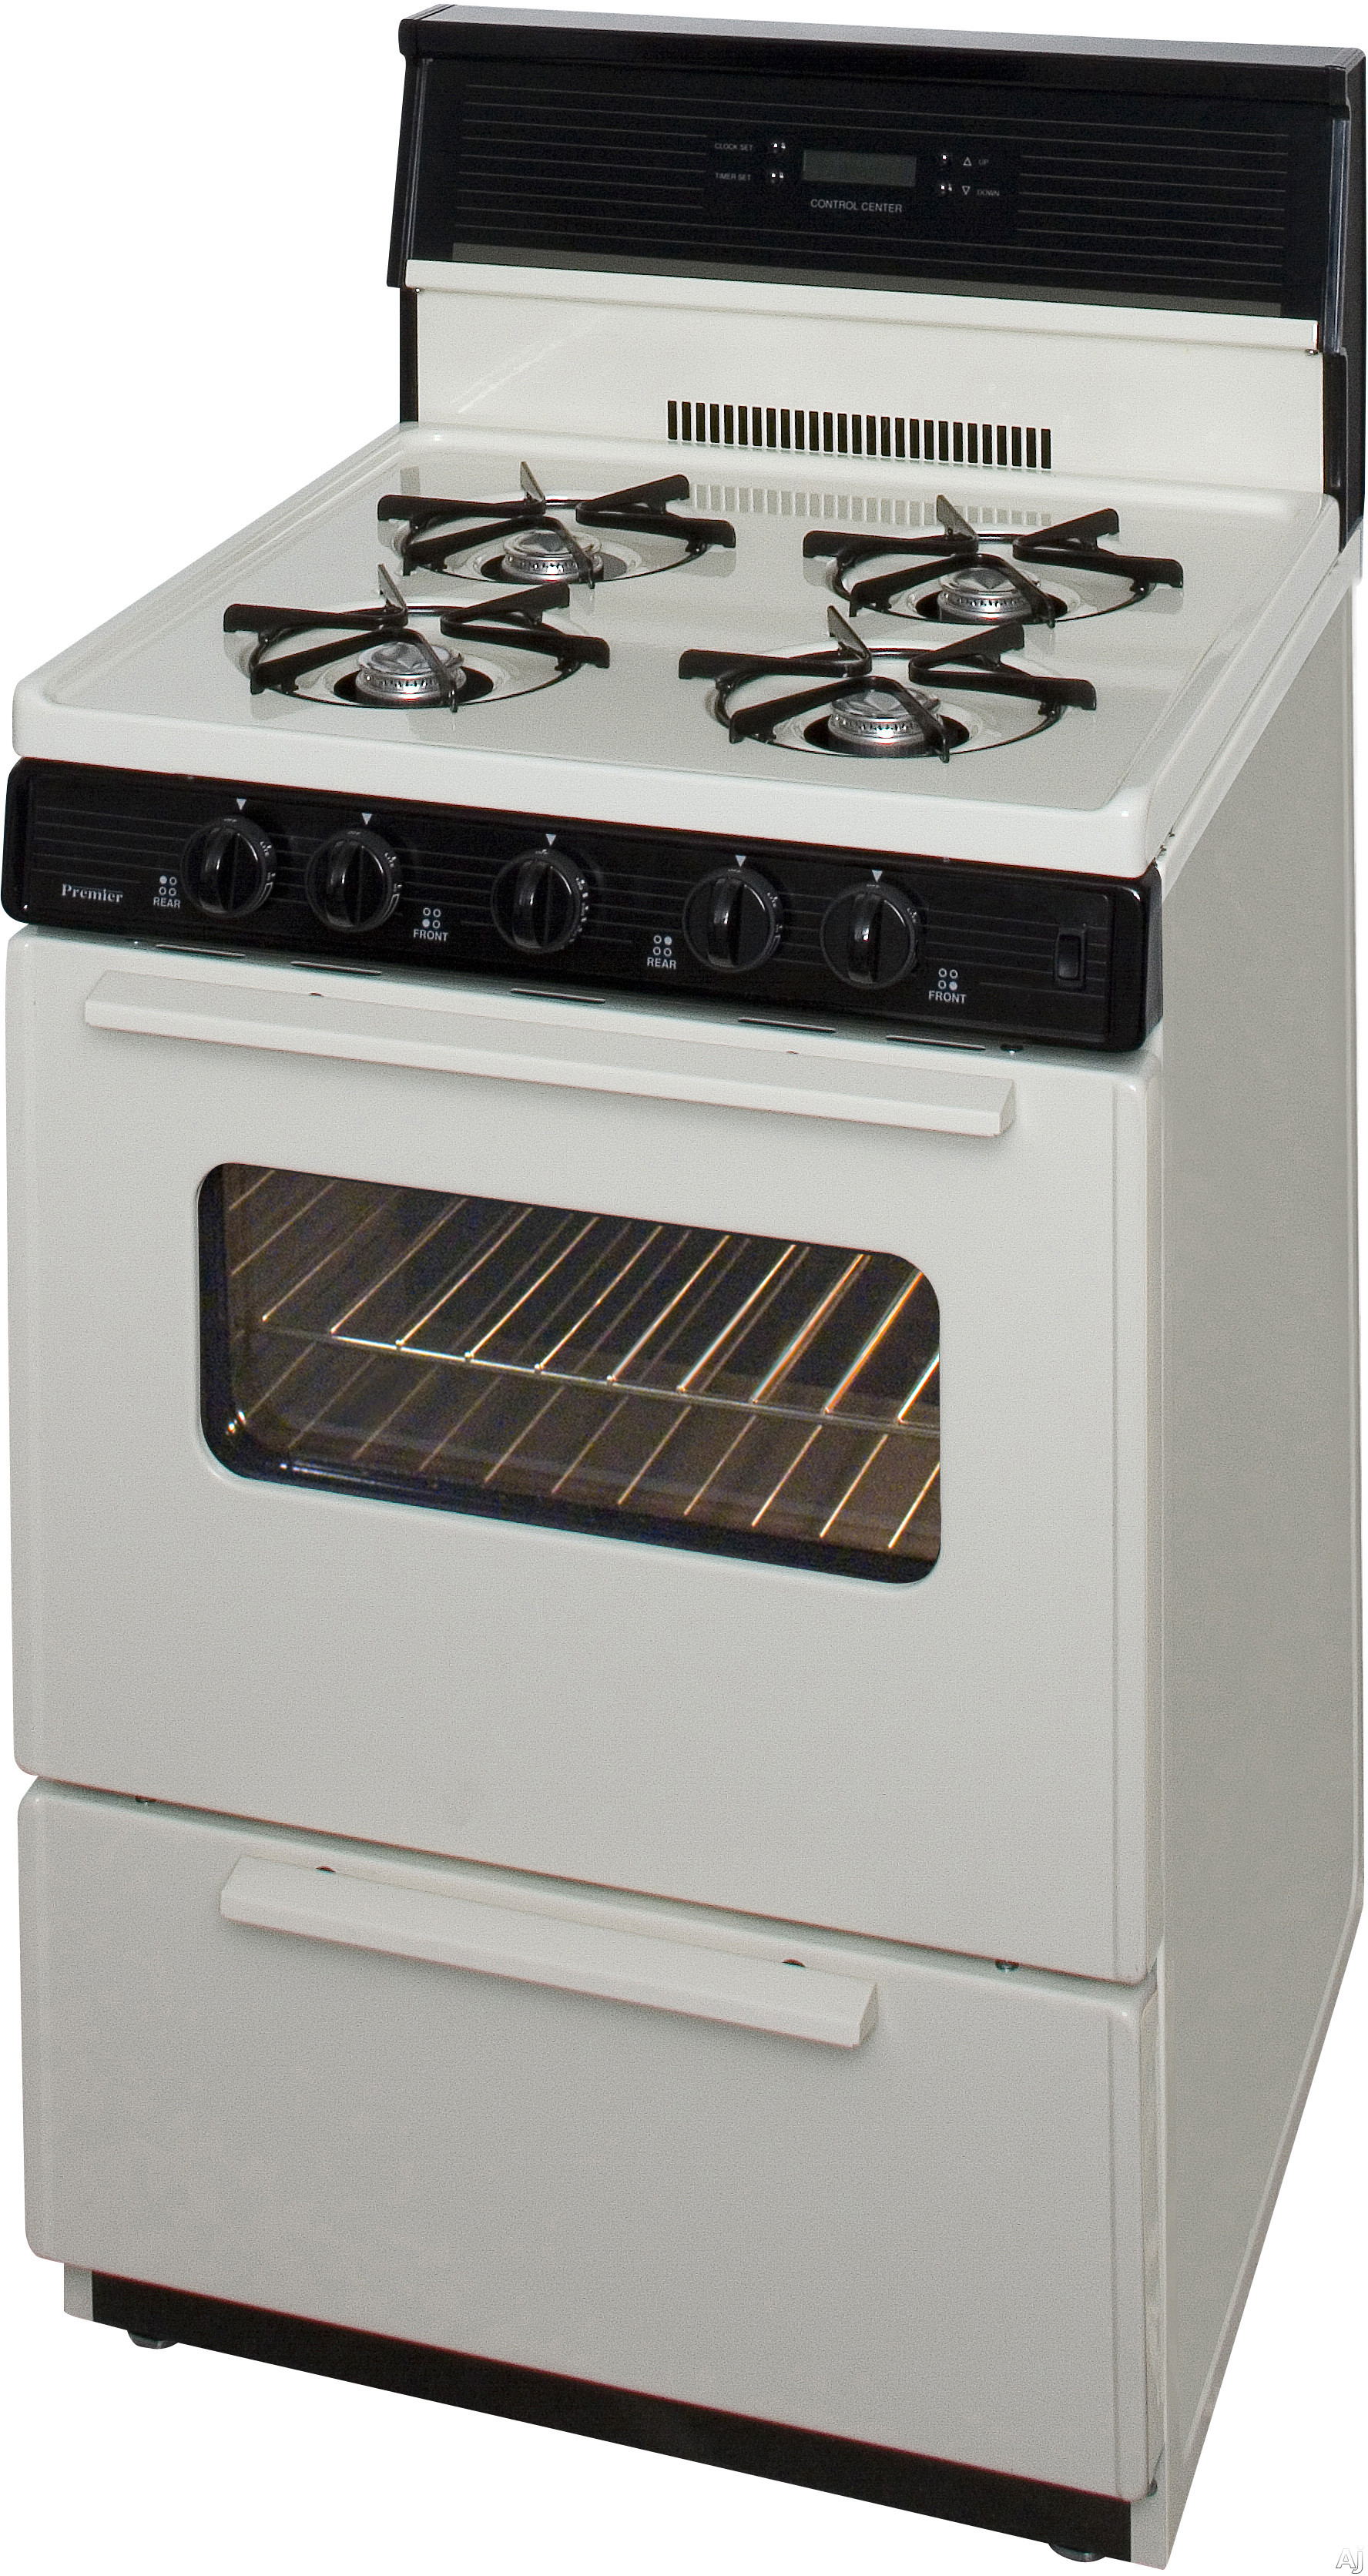 Premier Sck240xp 24 Inch Freestanding Gas Range With 4